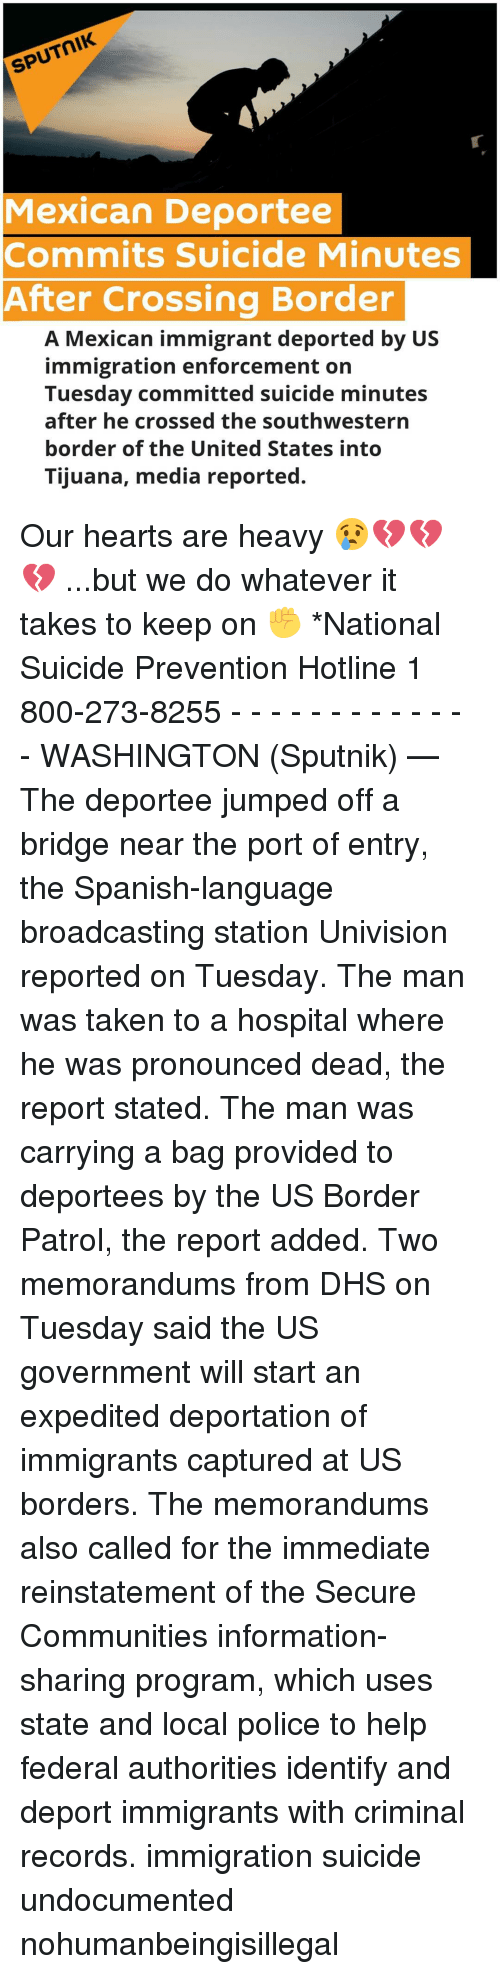 Memes, Spanish, and Mexican: SPUTNIK  Mexican Deportee  Commits Suicide Minutes  After Crossing Border  A Mexican immigrant deported by US  immigration enforcement on  Tuesday committed suicide minutes  after he crossed the southwestern  border of the United States into  Tijuana, media reported. Our hearts are heavy 😢💔💔💔 ...but we do whatever it takes to keep on ✊ *National Suicide Prevention Hotline 1 800-273-8255 - - - - - - - - - - - - - WASHINGTON (Sputnik) — The deportee jumped off a bridge near the port of entry, the Spanish-language broadcasting station Univision reported on Tuesday. The man was taken to a hospital where he was pronounced dead, the report stated. The man was carrying a bag provided to deportees by the US Border Patrol, the report added. Two memorandums from DHS on Tuesday said the US government will start an expedited deportation of immigrants captured at US borders. The memorandums also called for the immediate reinstatement of the Secure Communities information-sharing program, which uses state and local police to help federal authorities identify and deport immigrants with criminal records. immigration suicide undocumented nohumanbeingisillegal